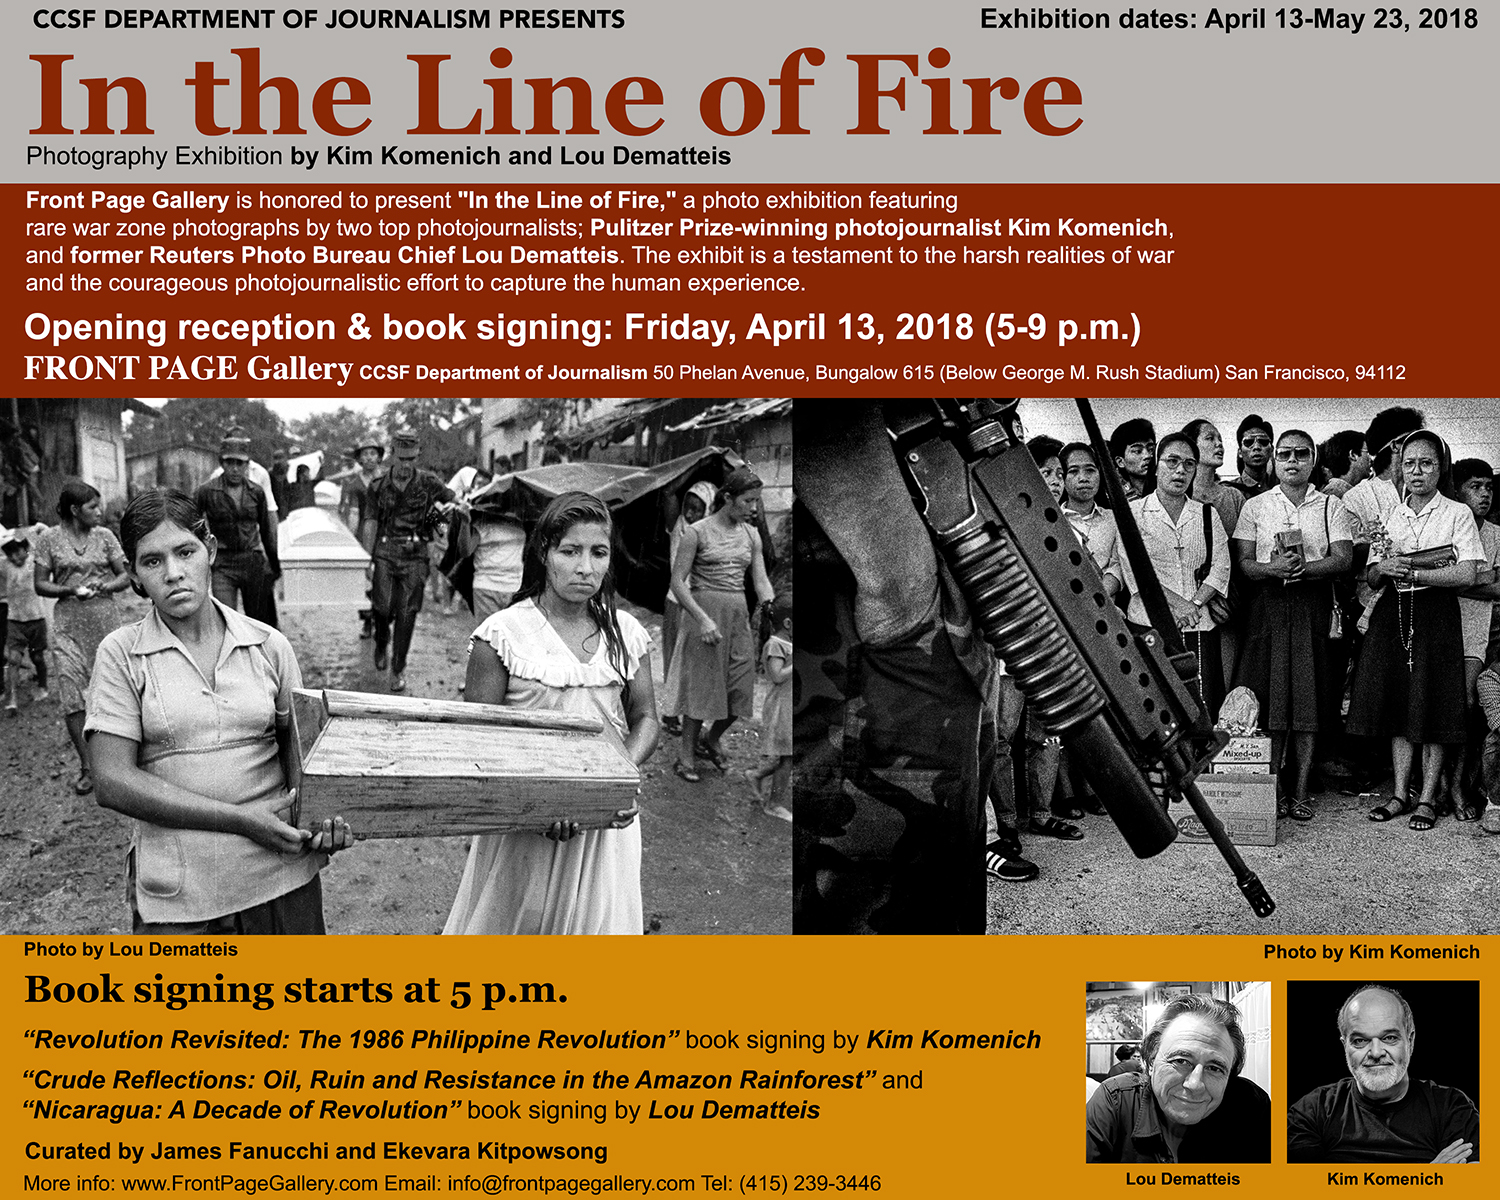 "Front Page Gallery is honored to present ""In the Line of Fire,"" a photo exhibition featuring rare war zone photographs by two top photojournalists; Pulitzer Prize-winning photojournalist Kim Komenich, and former Reuters Photo Bureau Chief Lou Dematteis. The exhibit is a testament to the harsh realities of war and the courageous photojournalistic effort to capture the human experience."